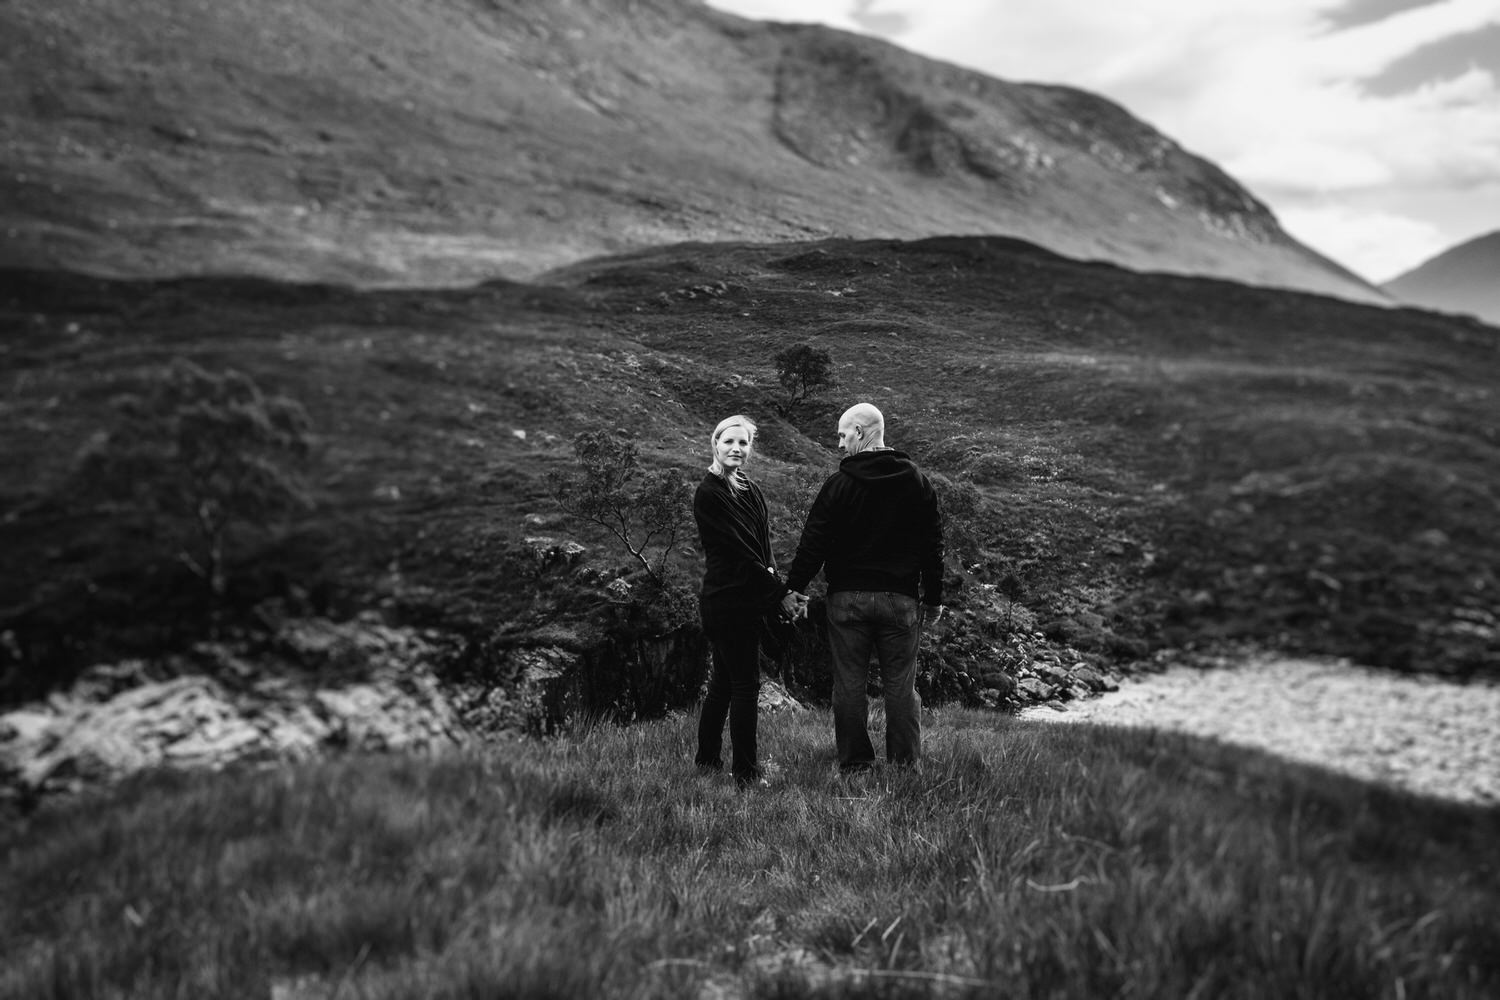 Man and woman standing in Glen Etive area of Glencoe